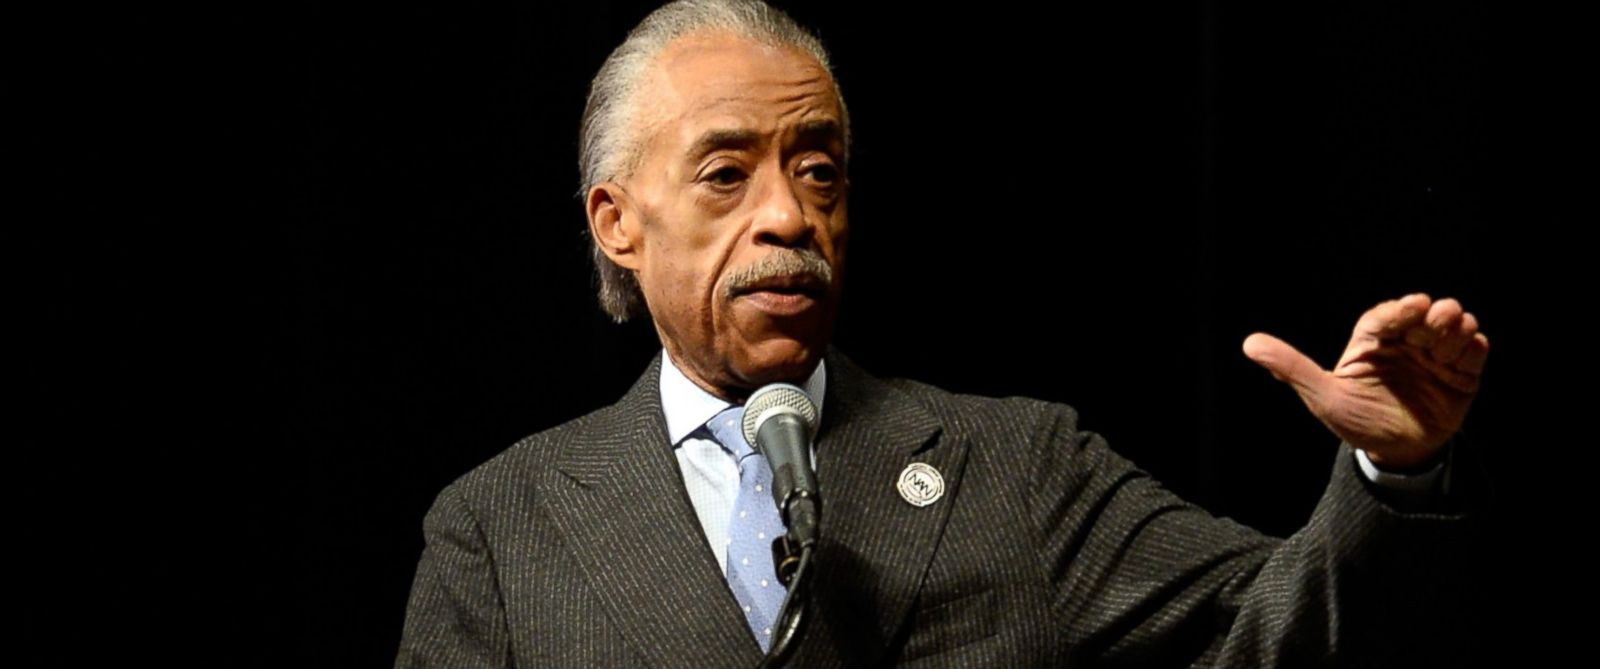 waffle house mobile al with 23293 Sharpton Holds Town Hall On Black Womans Restaurant Arrest on Day 12 Spanish Fort Al together with Fuse Box Diagram For 54 Plate Astra Diesel in addition Folding Dog House further Out On Limb In Lebanon further Cimentaciones Superficiales.